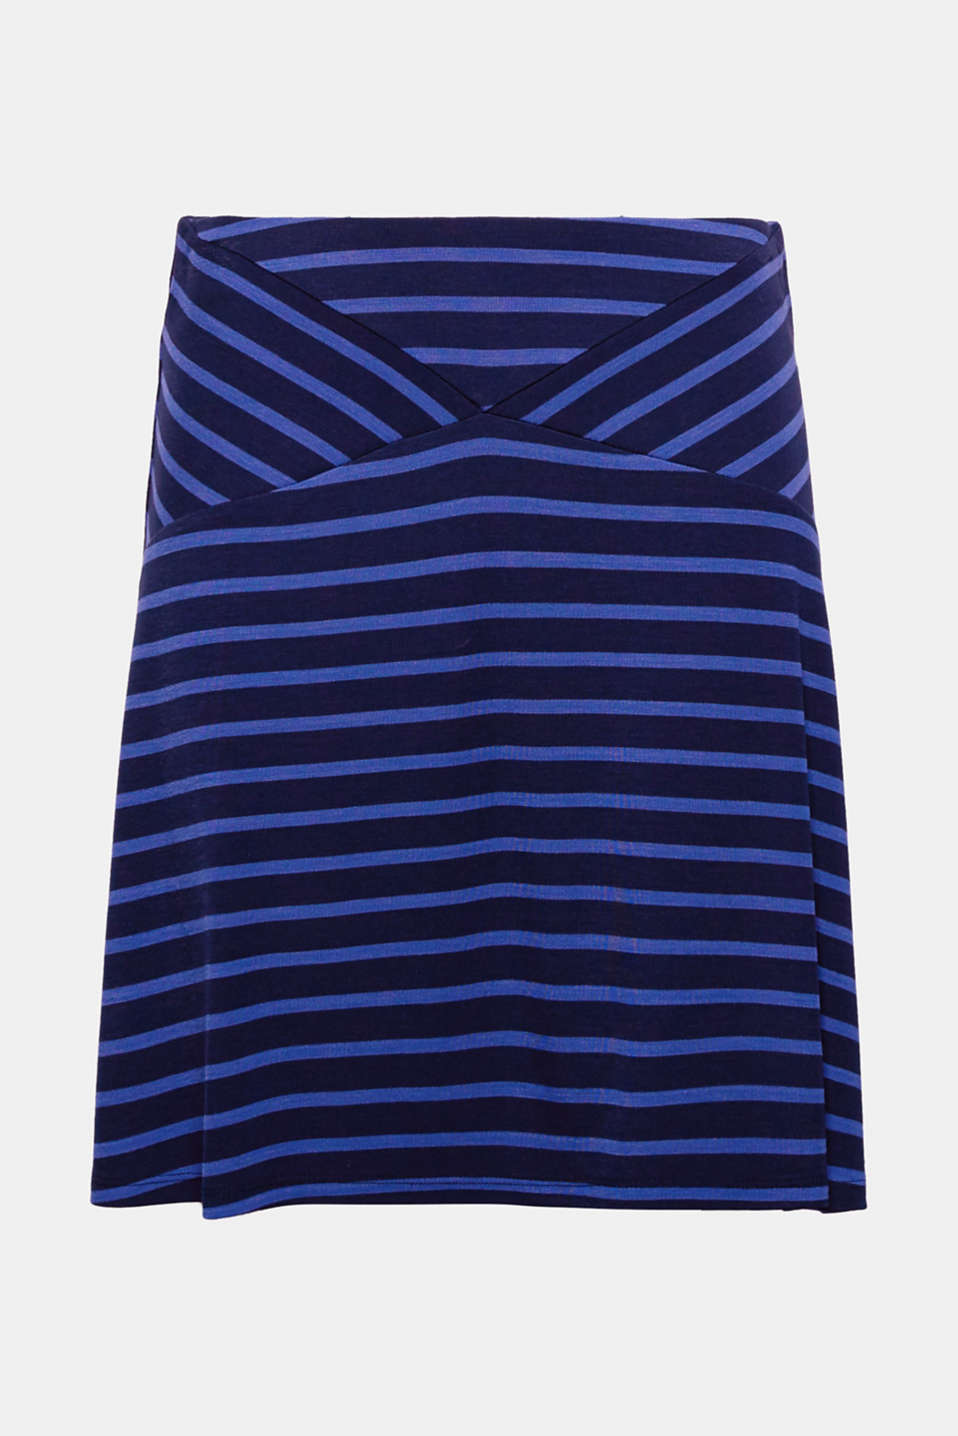 The stripes and the lightweight jersey material give this skirt a particularly floaty finish.